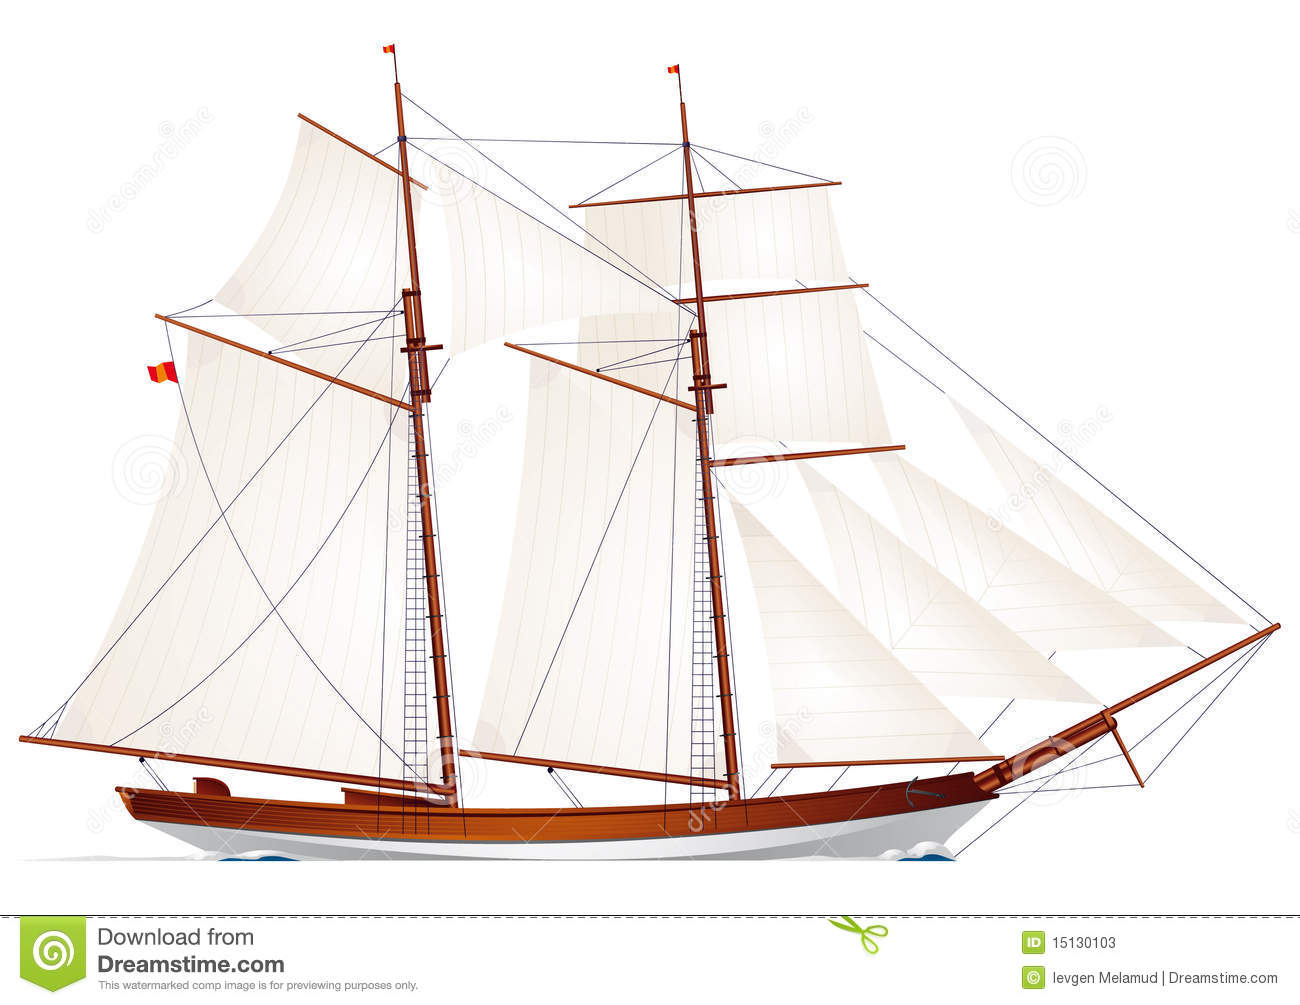 Schooner. Sailboat. Sailing Vessel Stock Photos - Image: 15130103